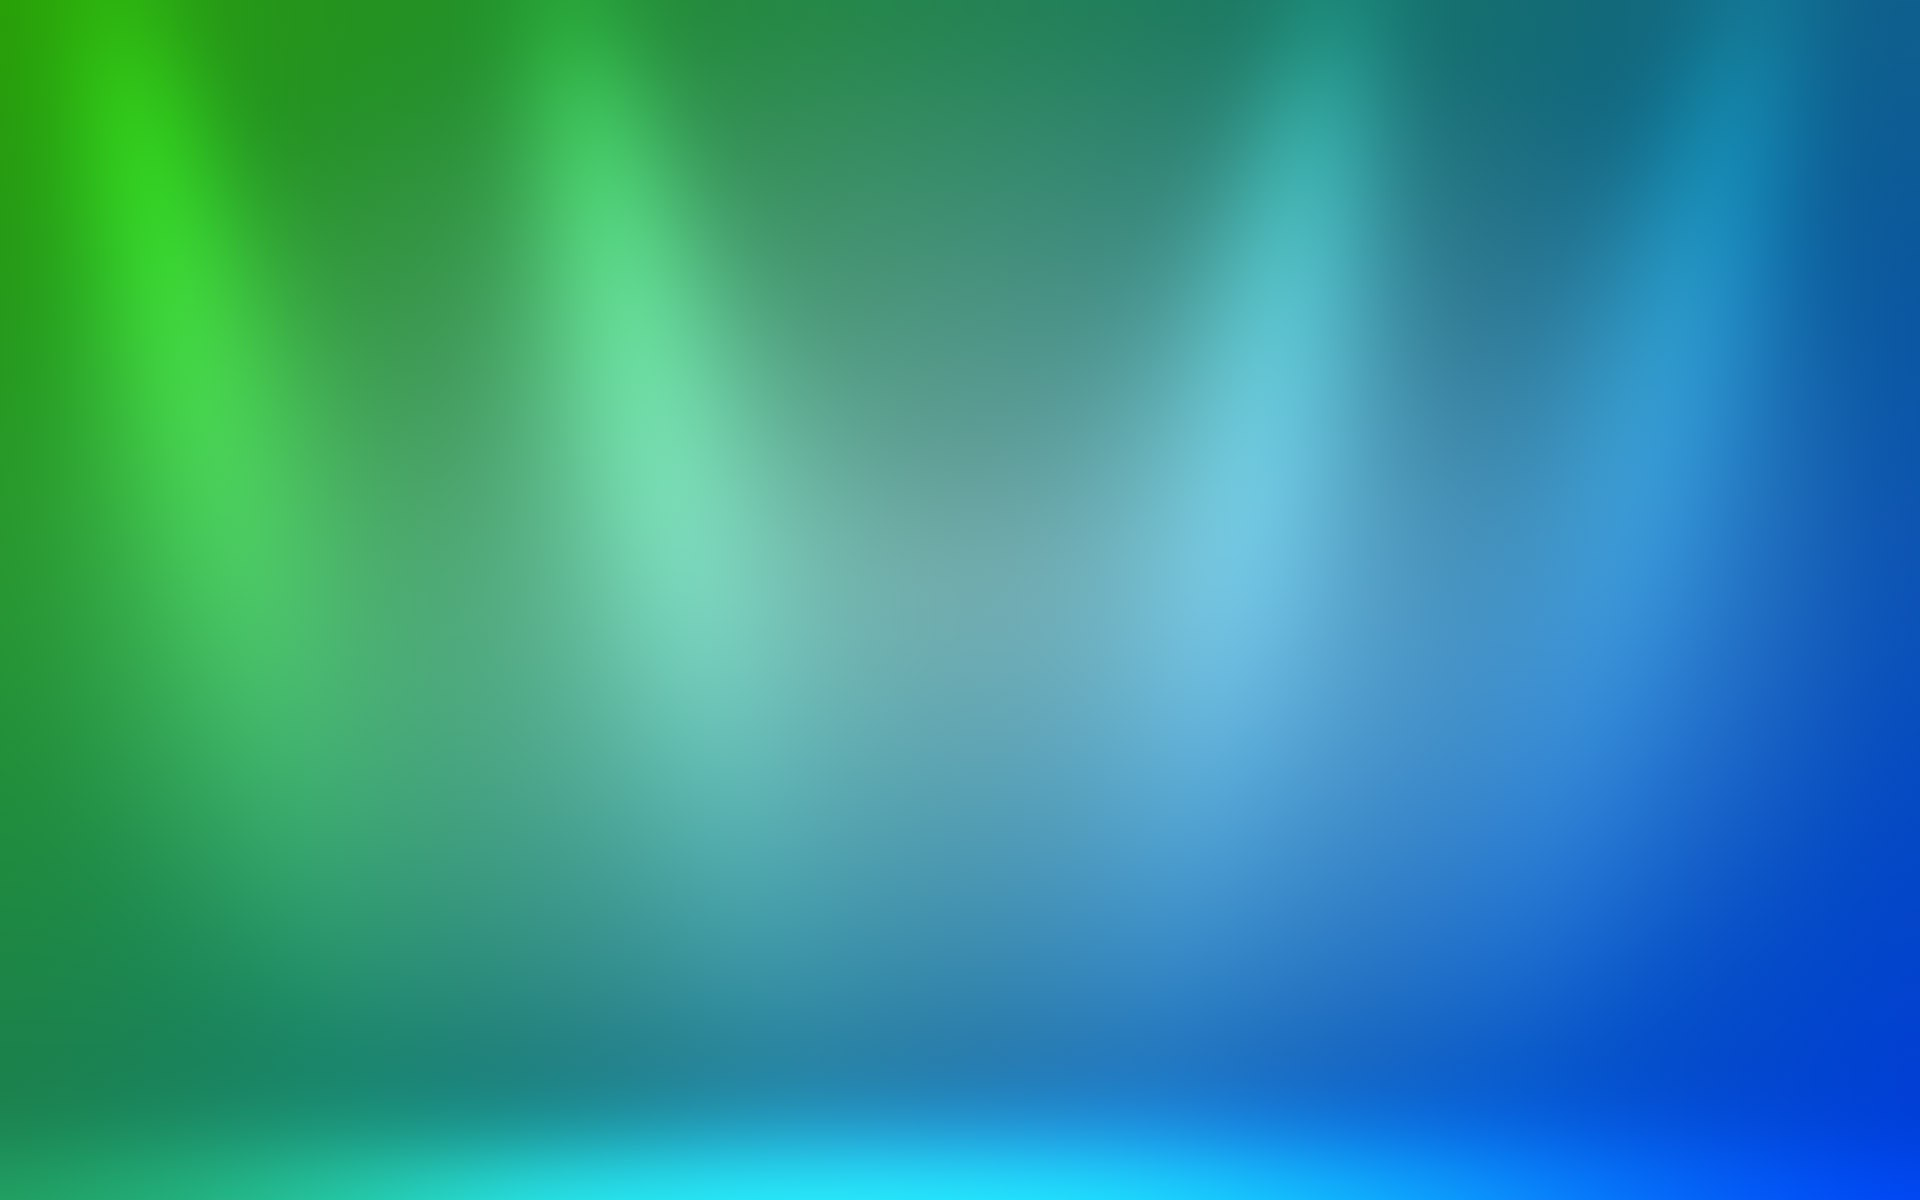 Blue Ombre background  Download free cool full HD